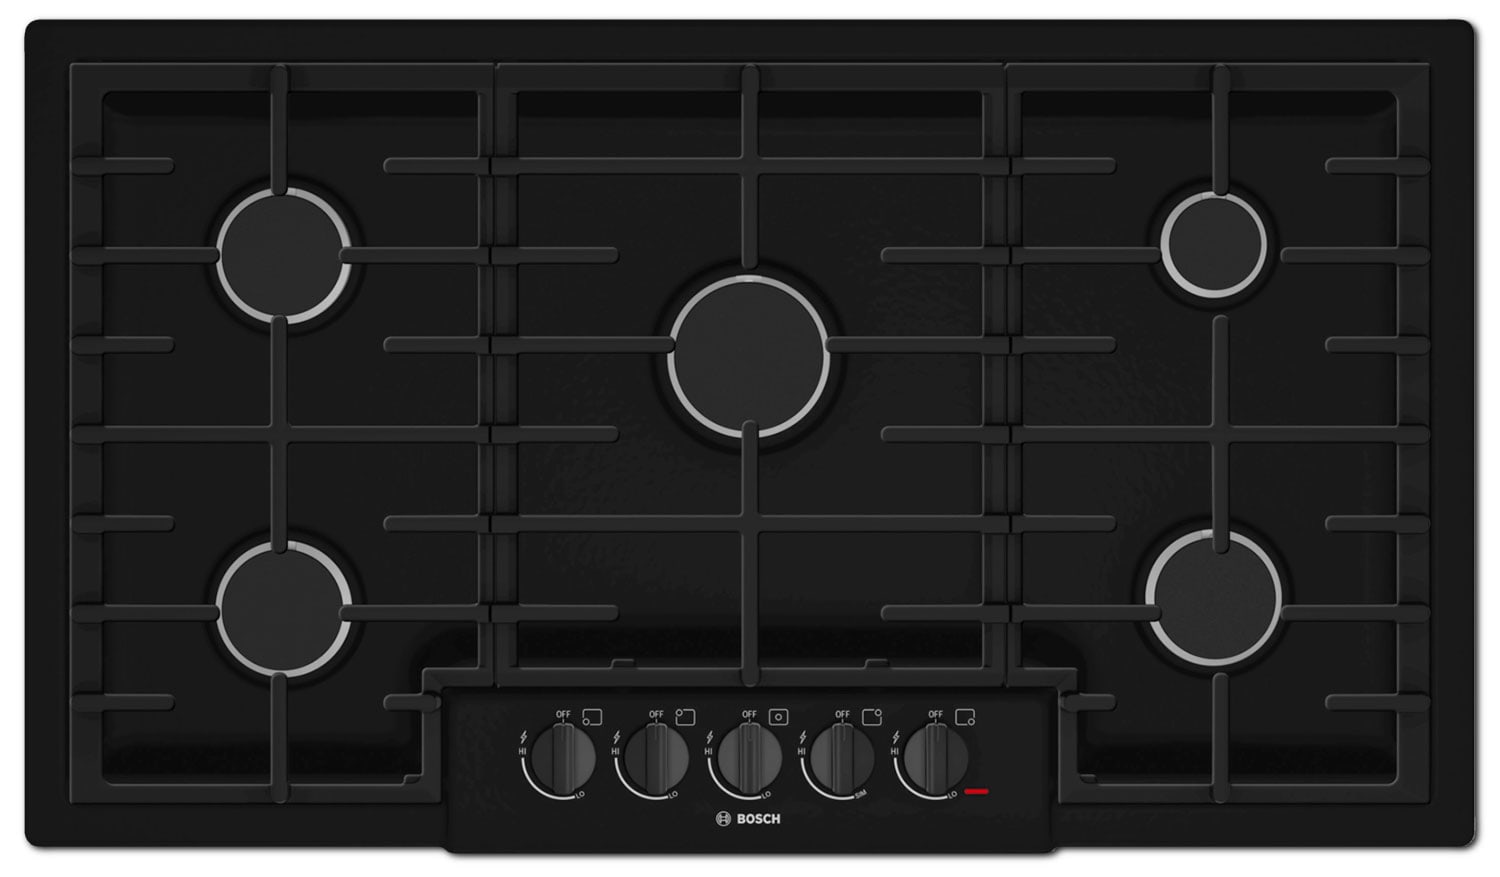 Bosch Black Gas Cooktop - NGM8665UC